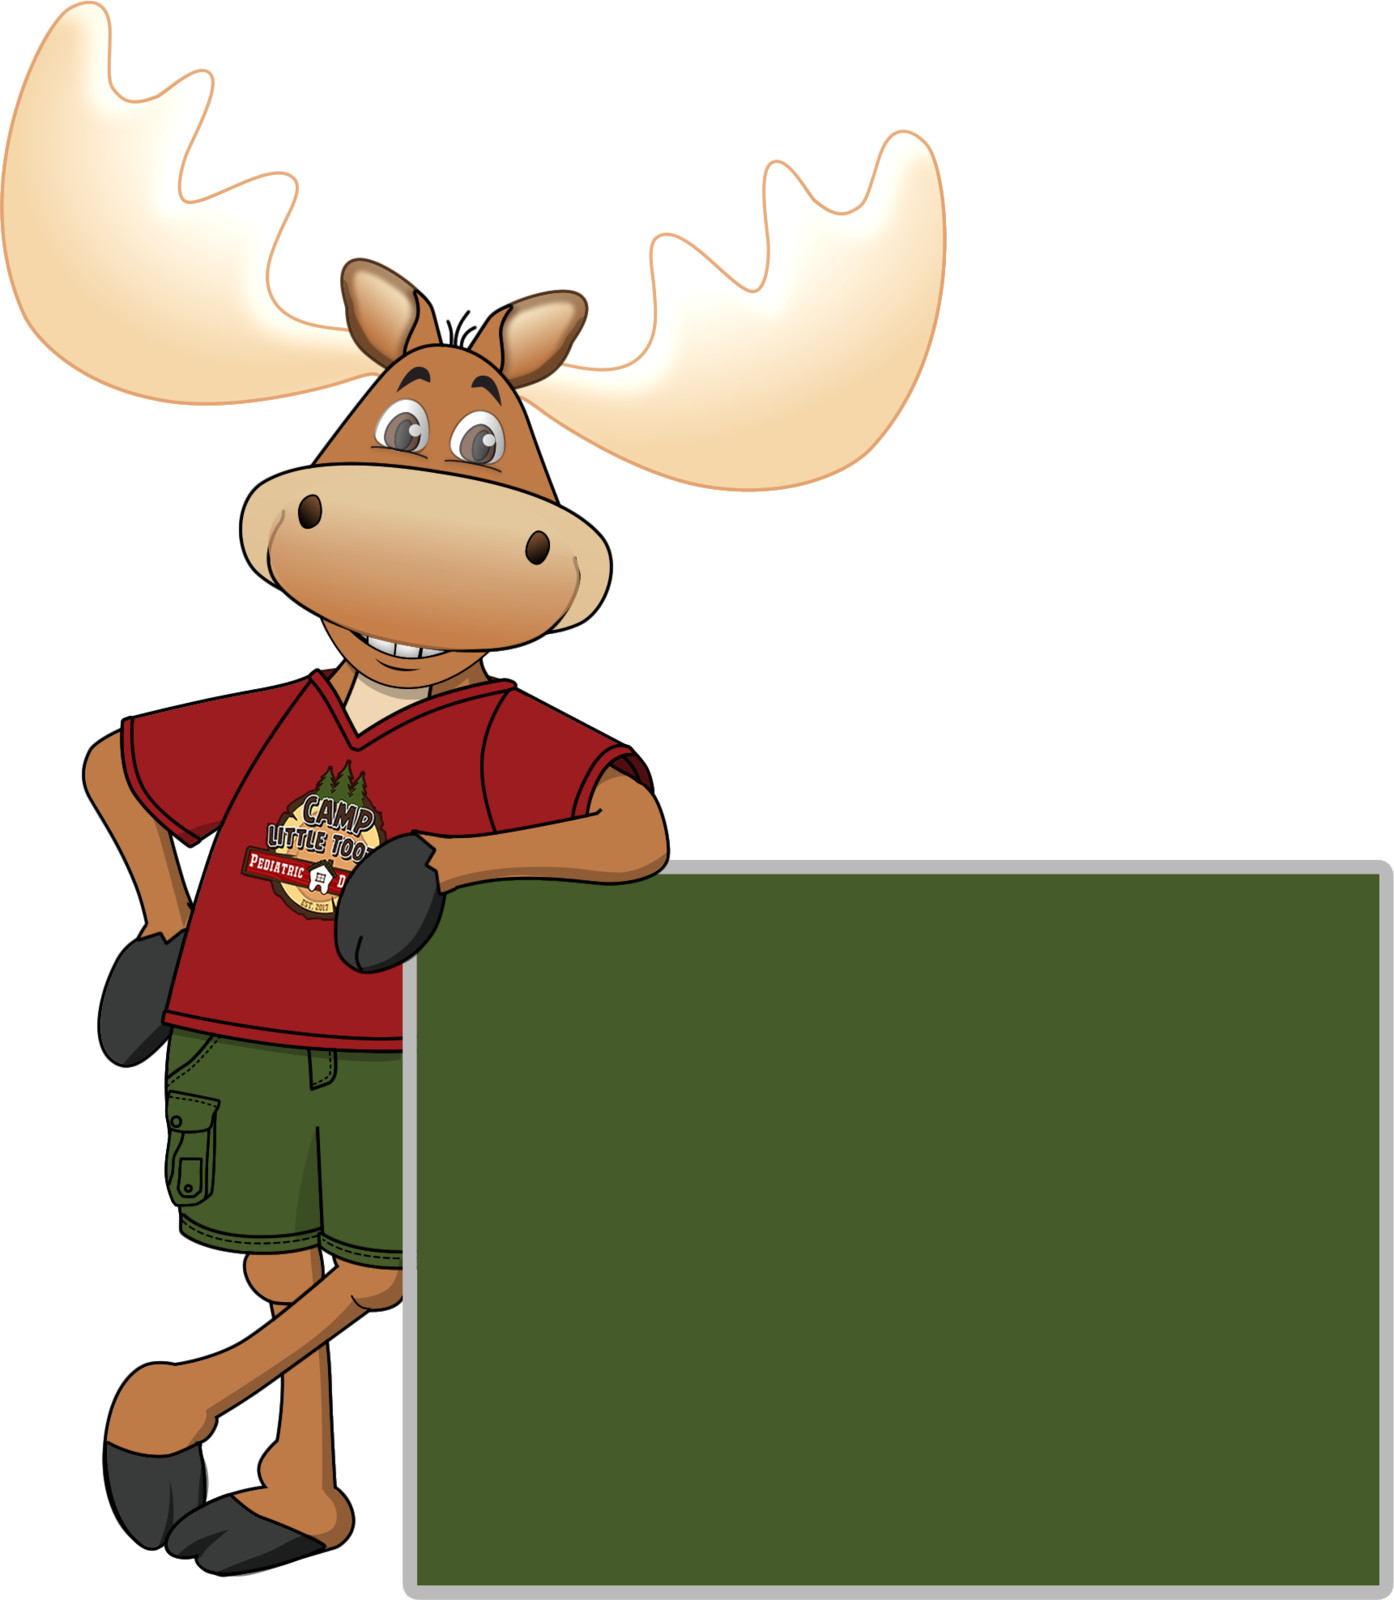 Max the Moose, Camp Little Tooth's mascot